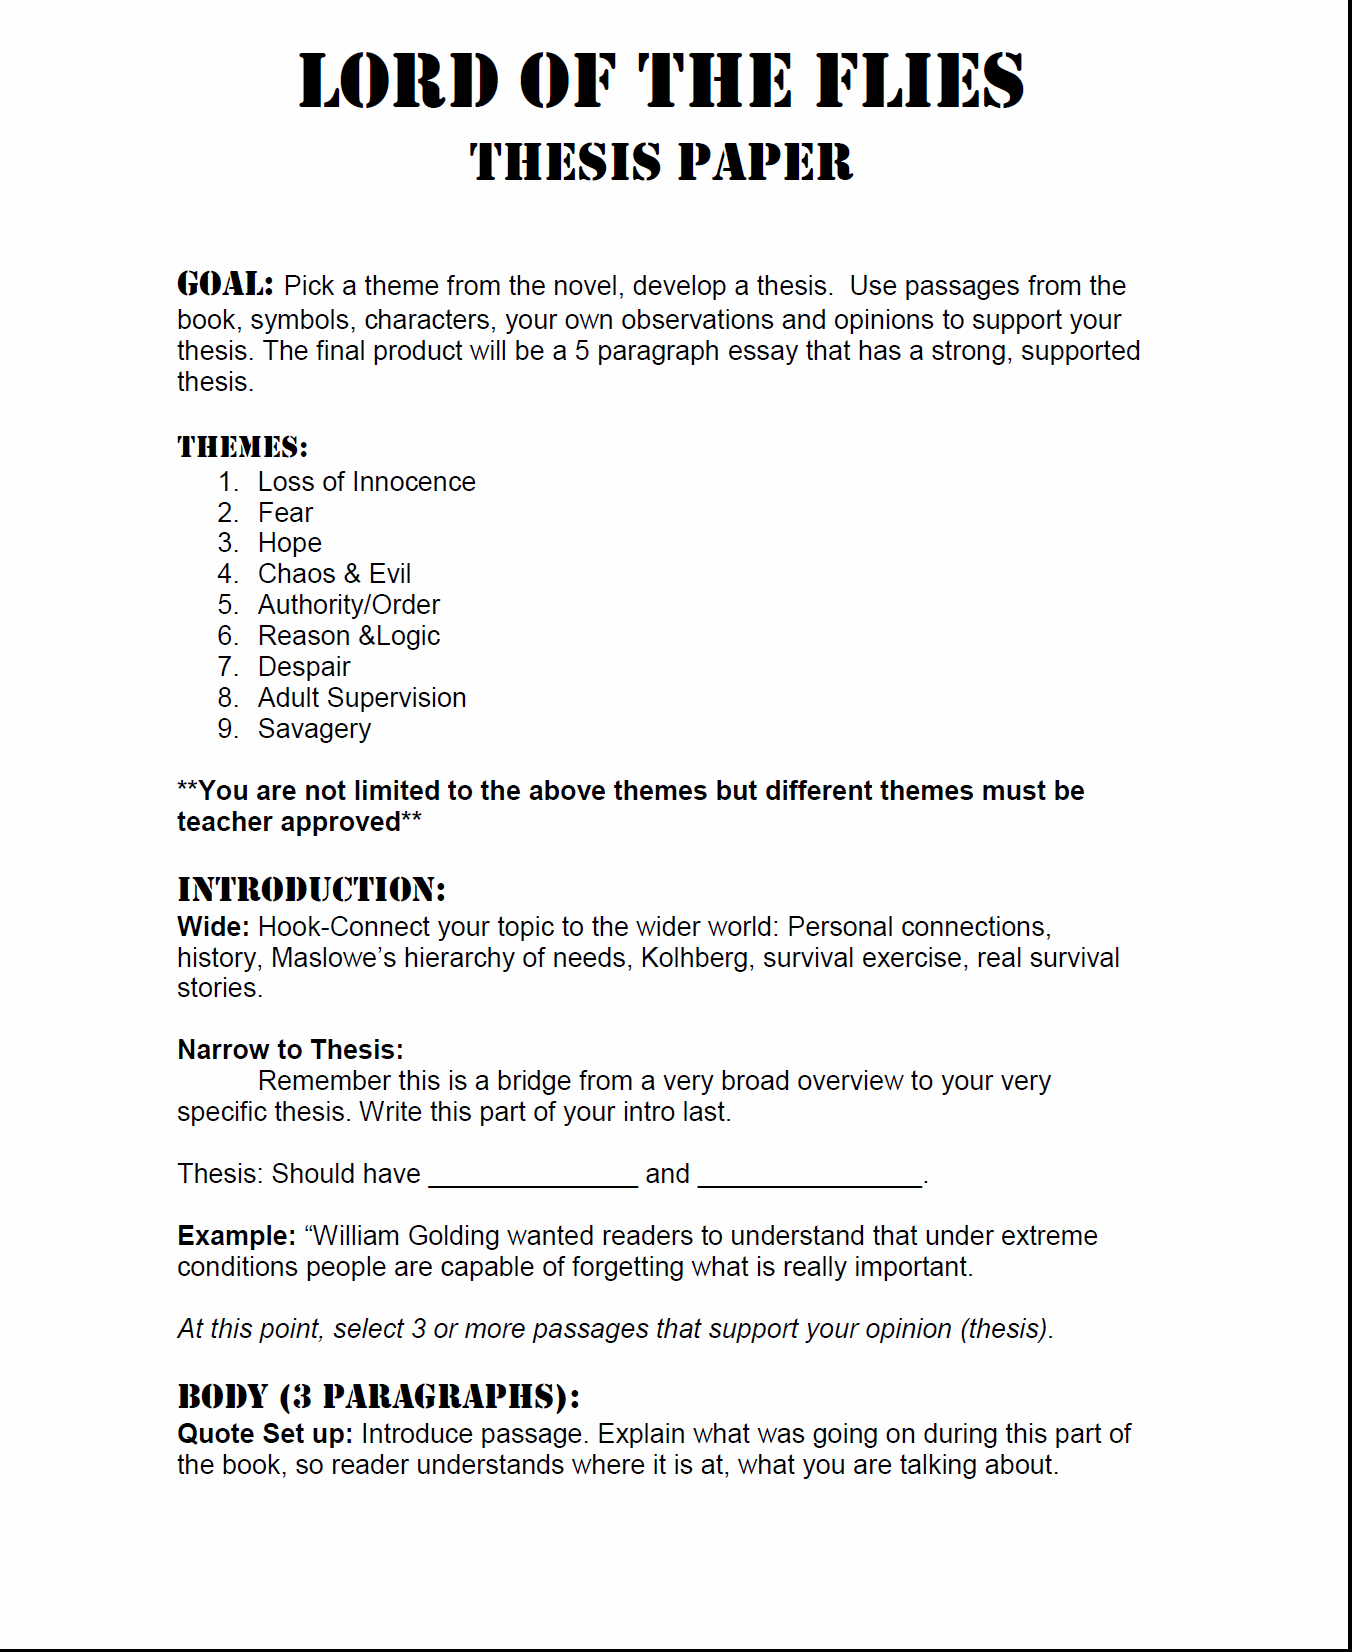 002 Essay Example Lord Of The Flies Thesis Essays On L Unusual Symbolism Beast Introduction Prompt Full